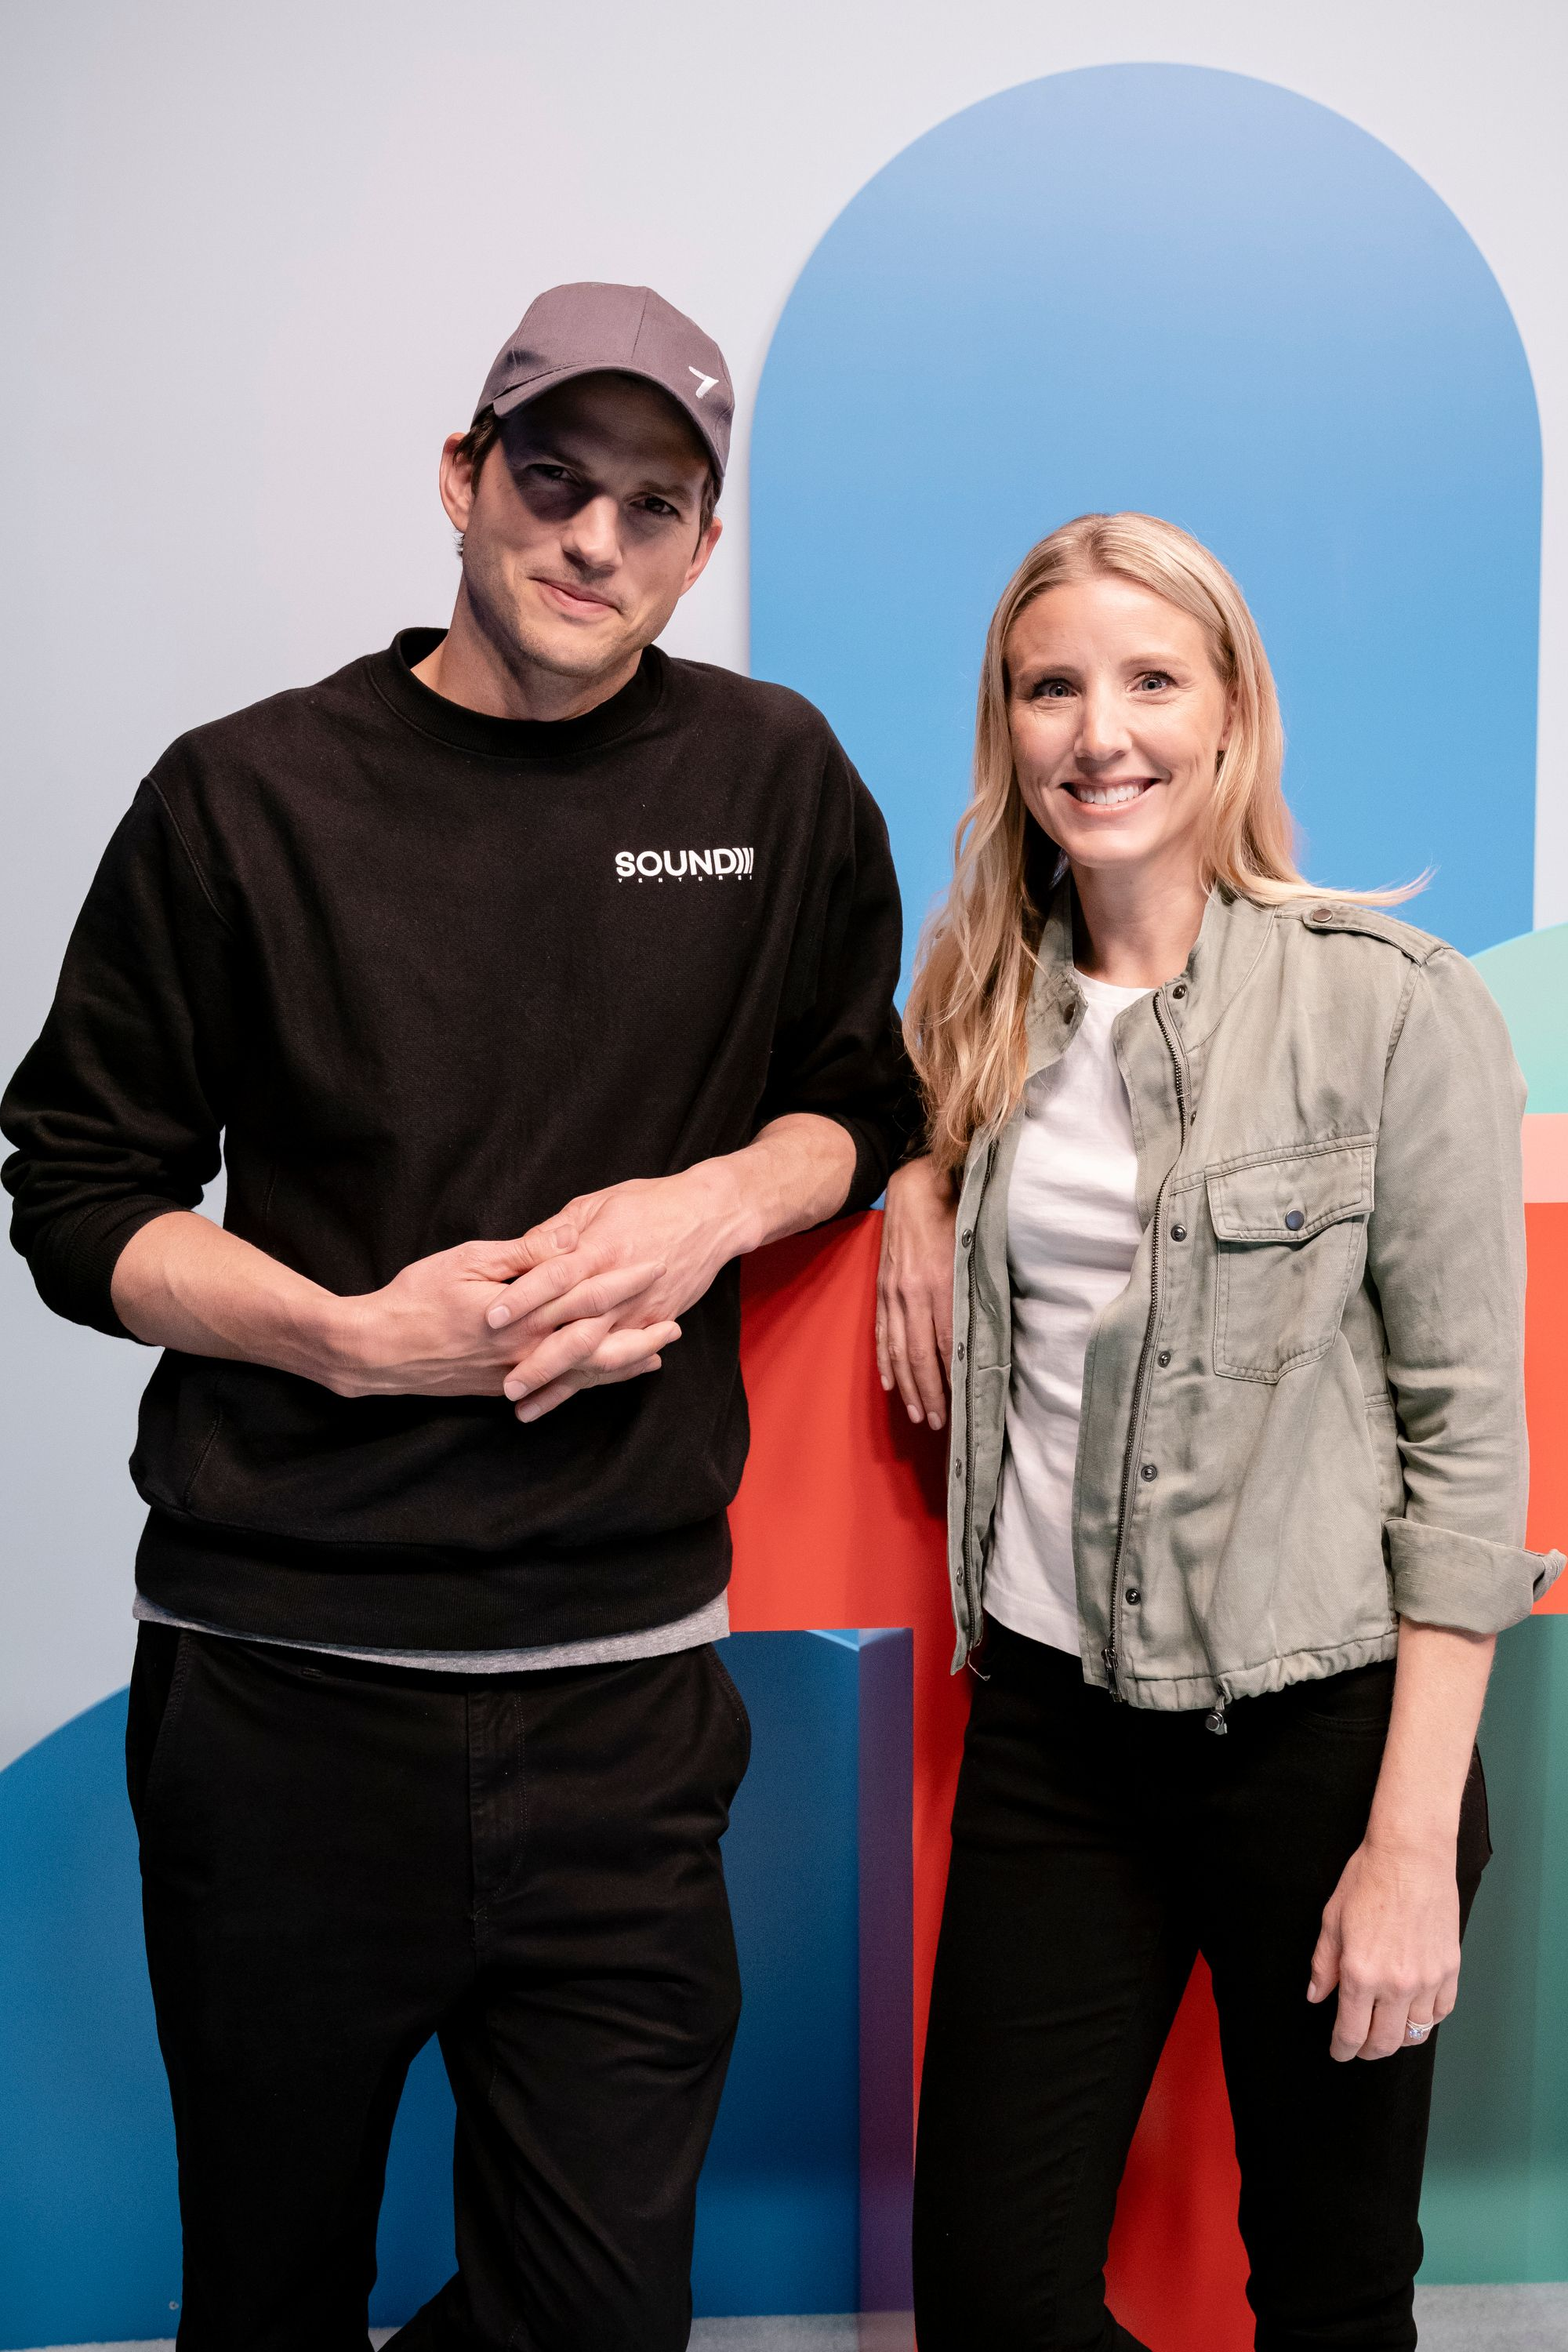 Thorn co-founder Ashton Kutcher and the author, Thorn CEO Julie Cordua.